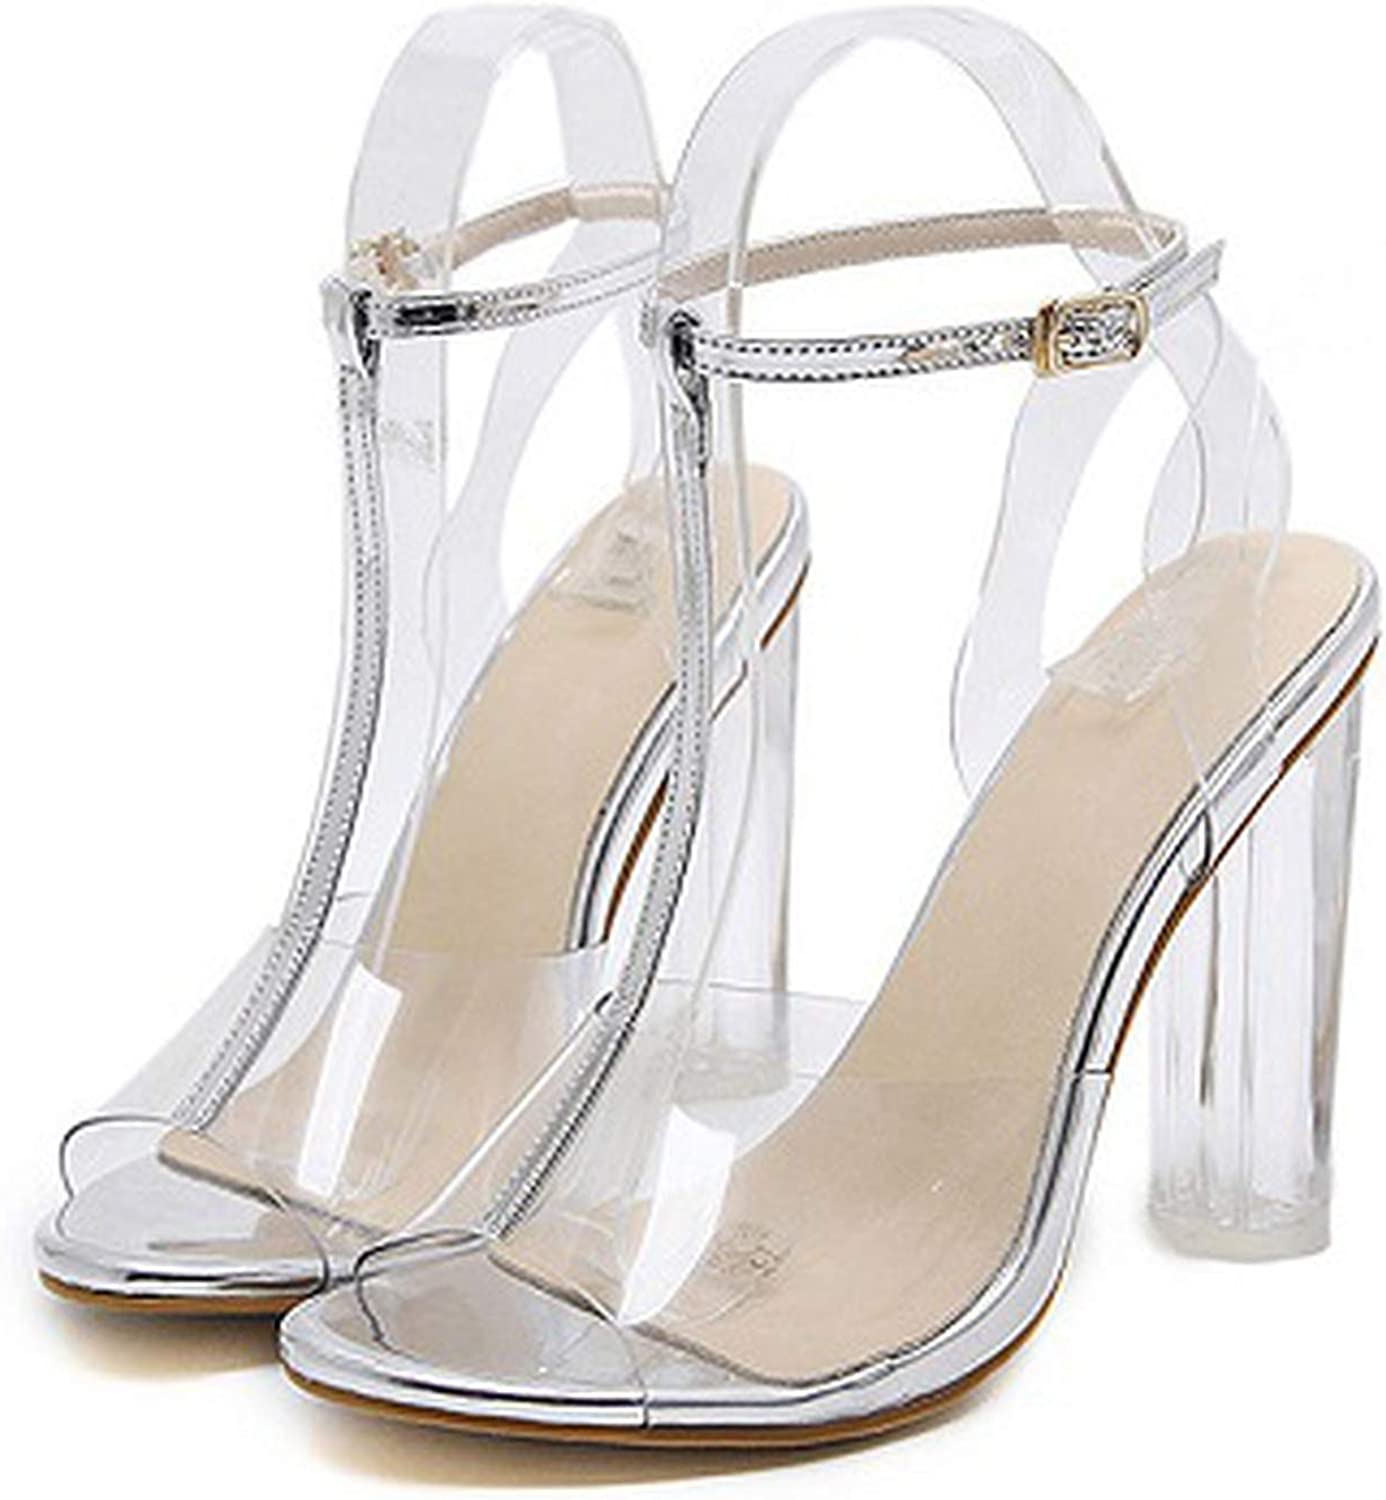 Gooding Day PVC Jelly Sandals Crystal Leopard Open Toed High Heels Transparent Heel Sandals Slippers 11CM